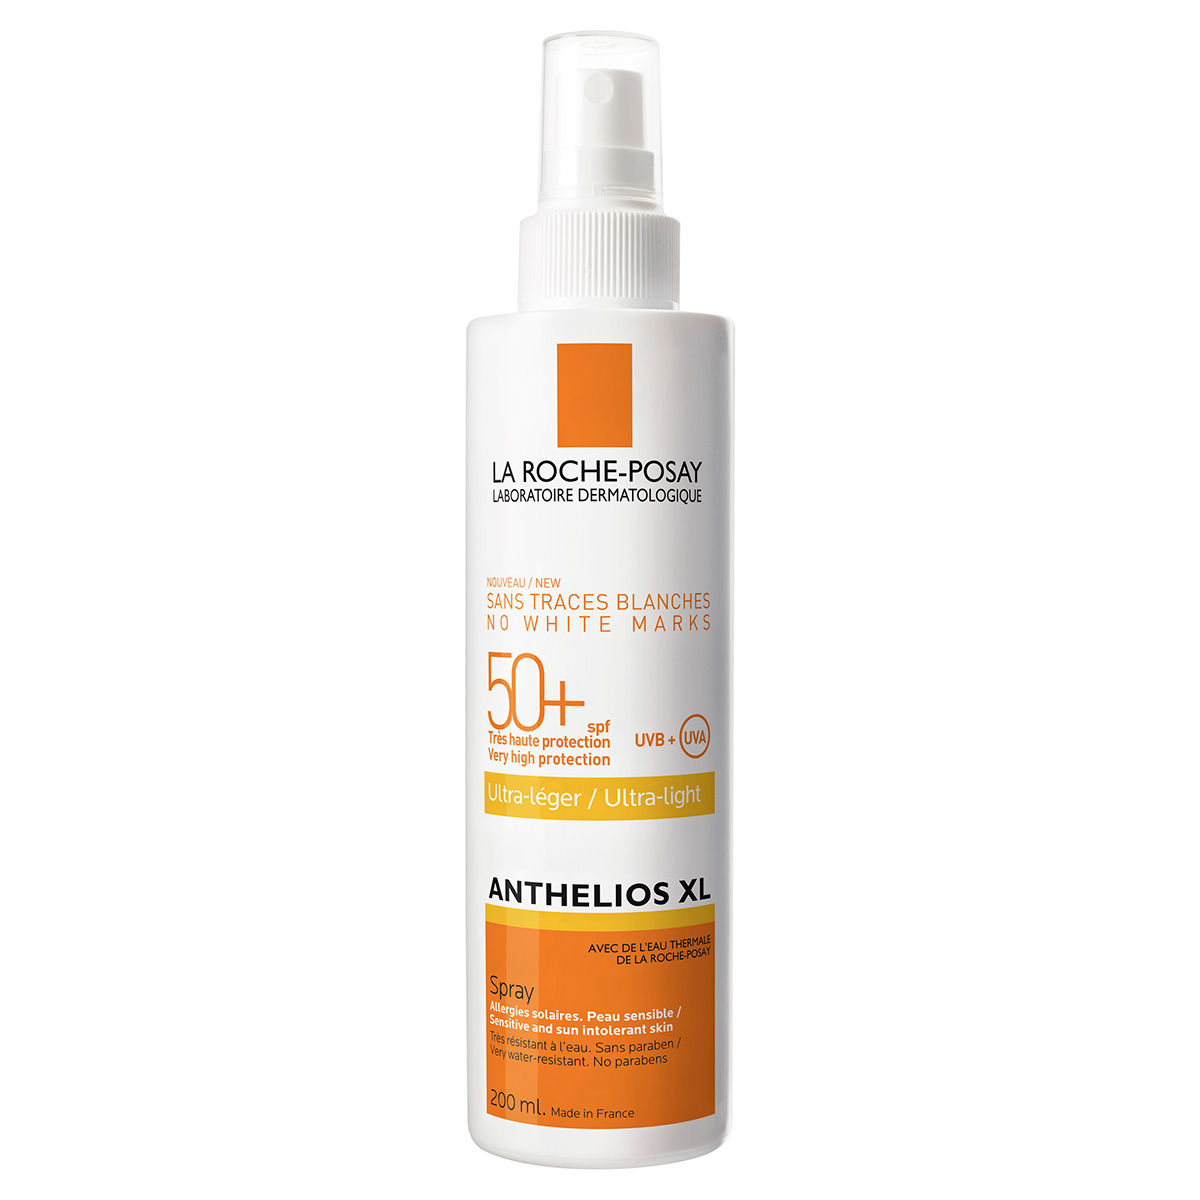 ultra lekki spray La Roche-Posay Anthelios